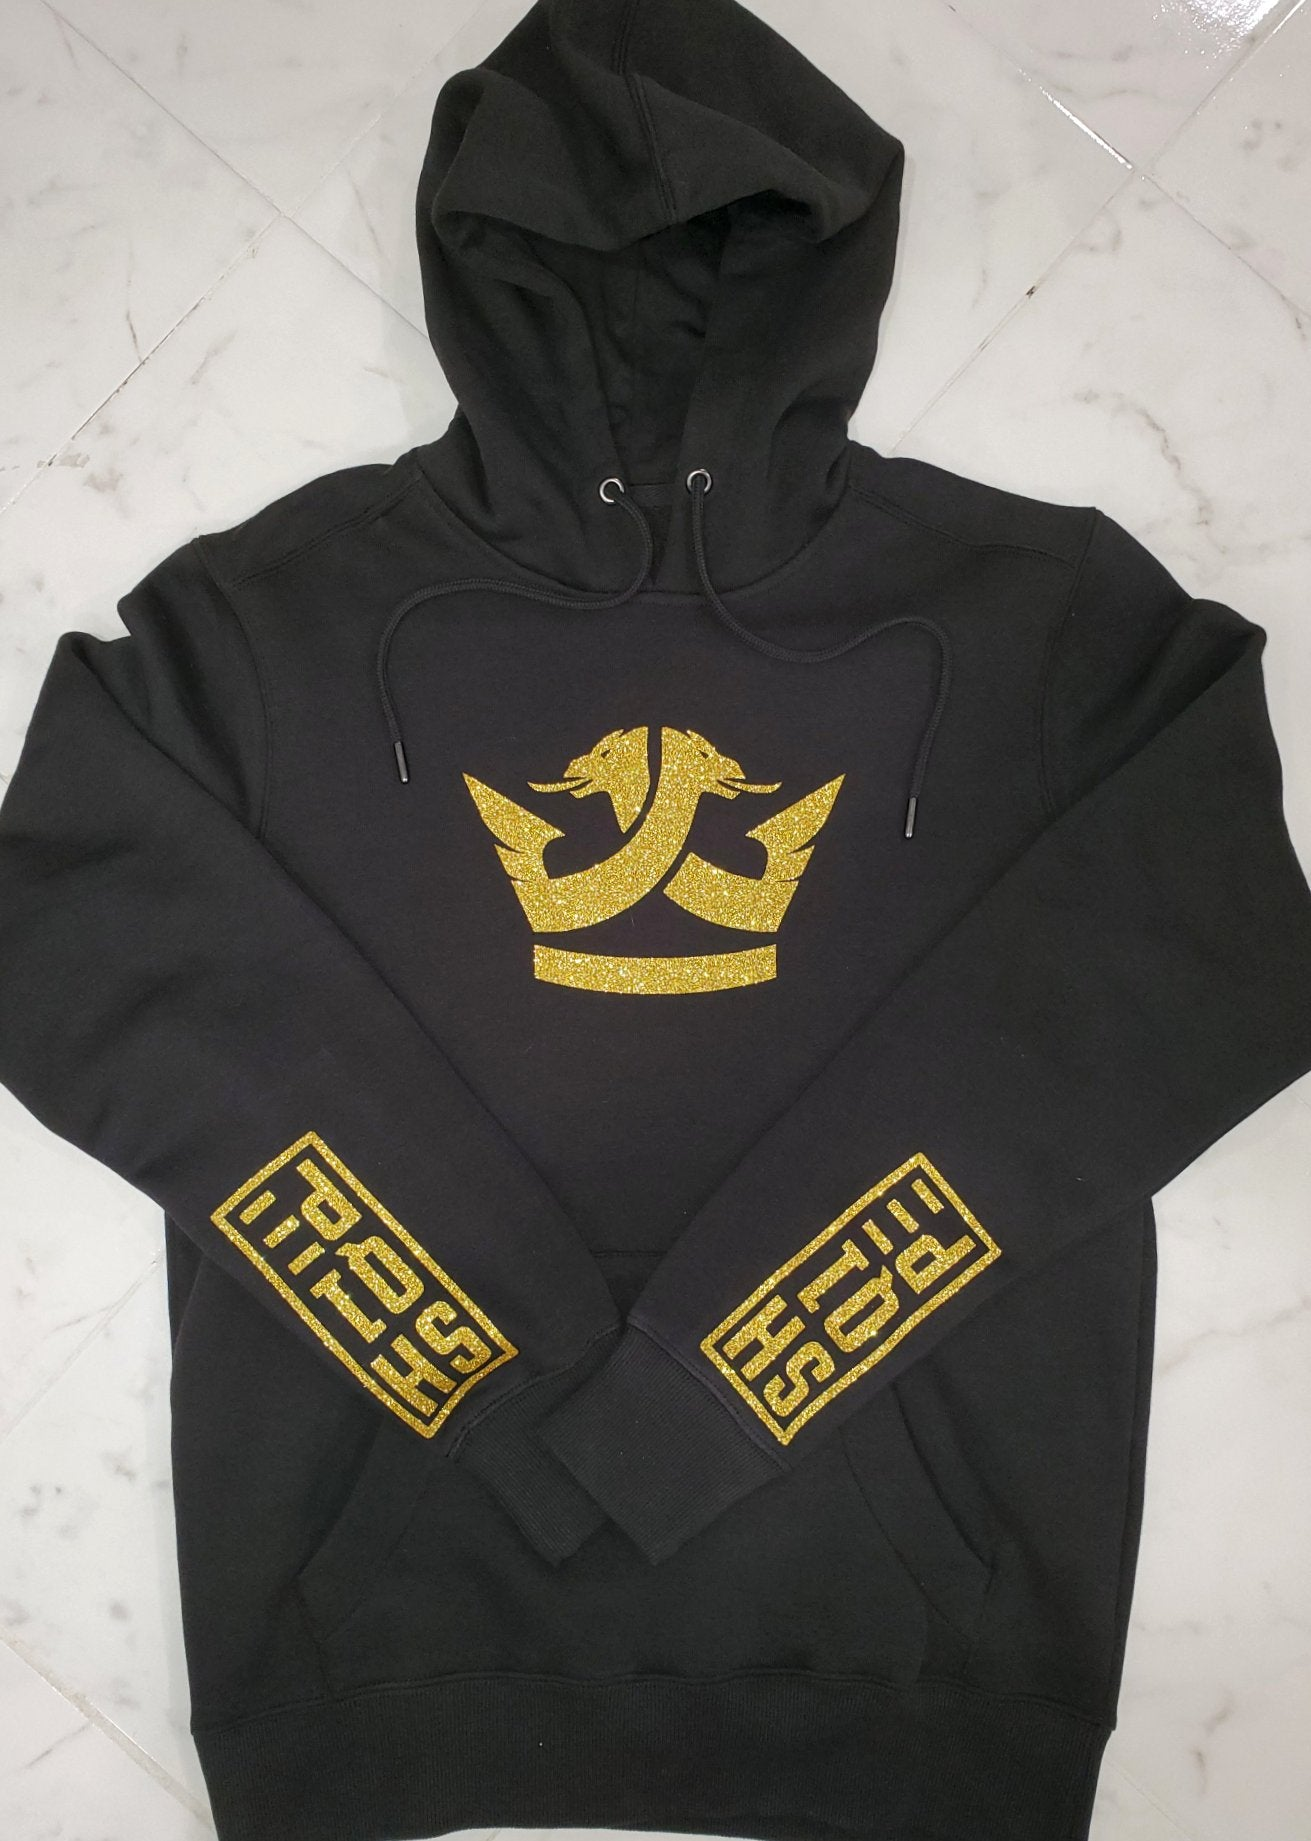 Limited Edition Shq1pe Hoodies- Jet Black (Gold Sparkle)